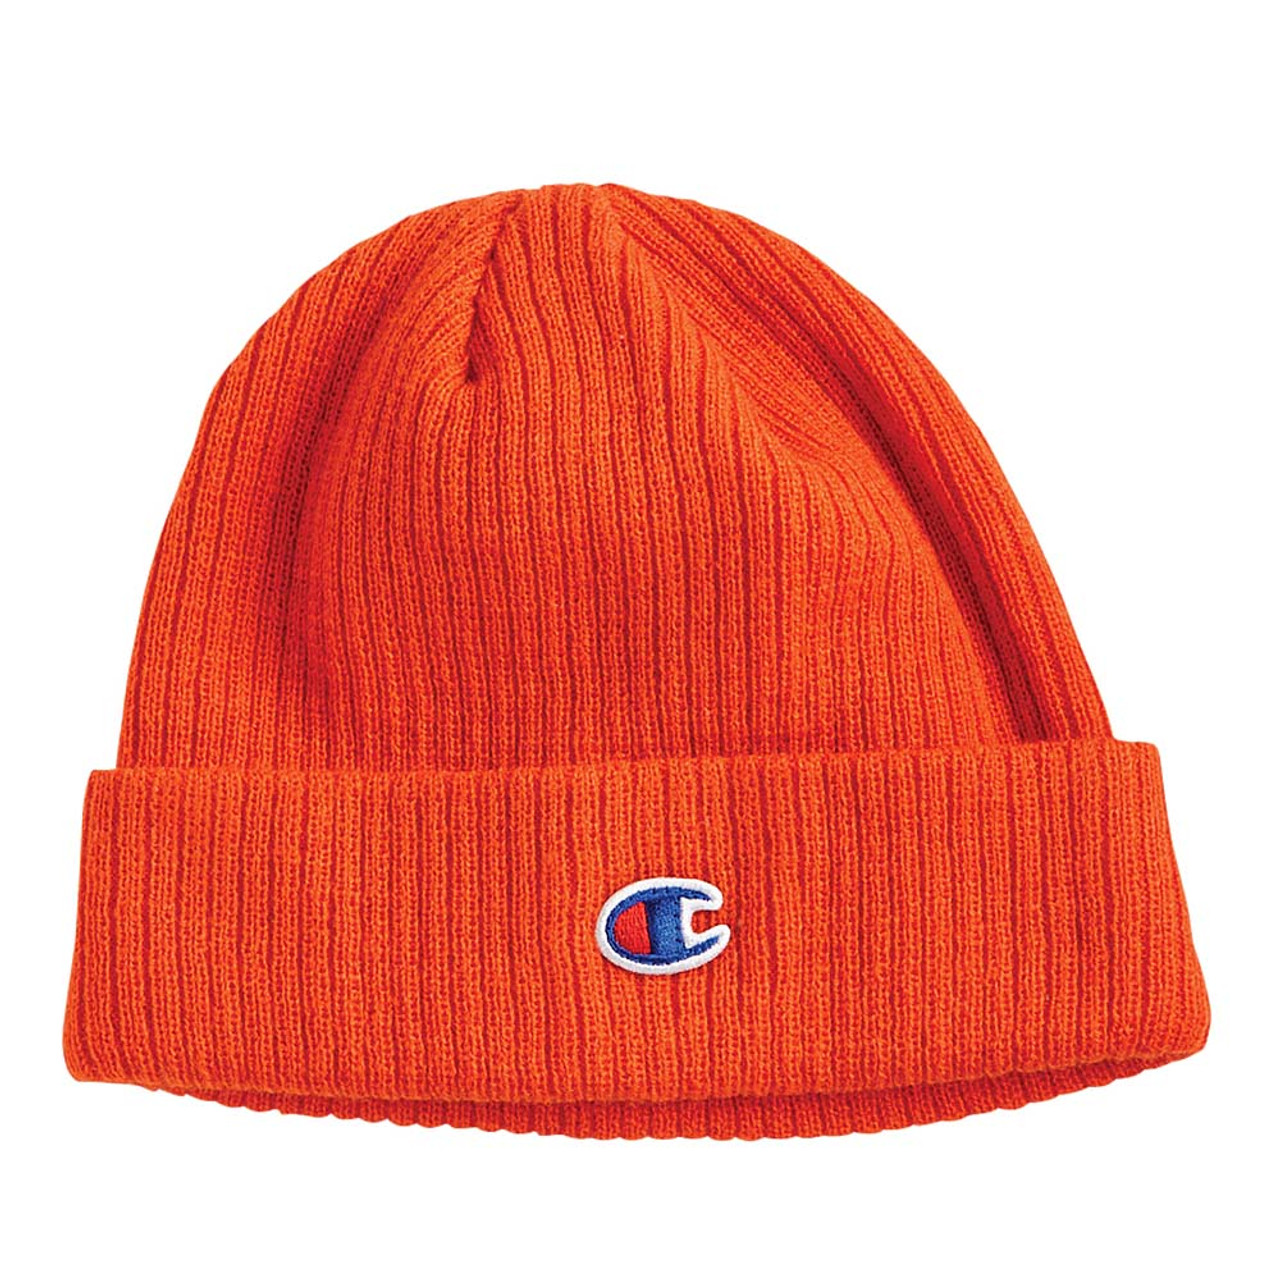 Spicy Orange - CS4003 Champion Cuffed Ribbed Knit Toque | T-shirt.ca